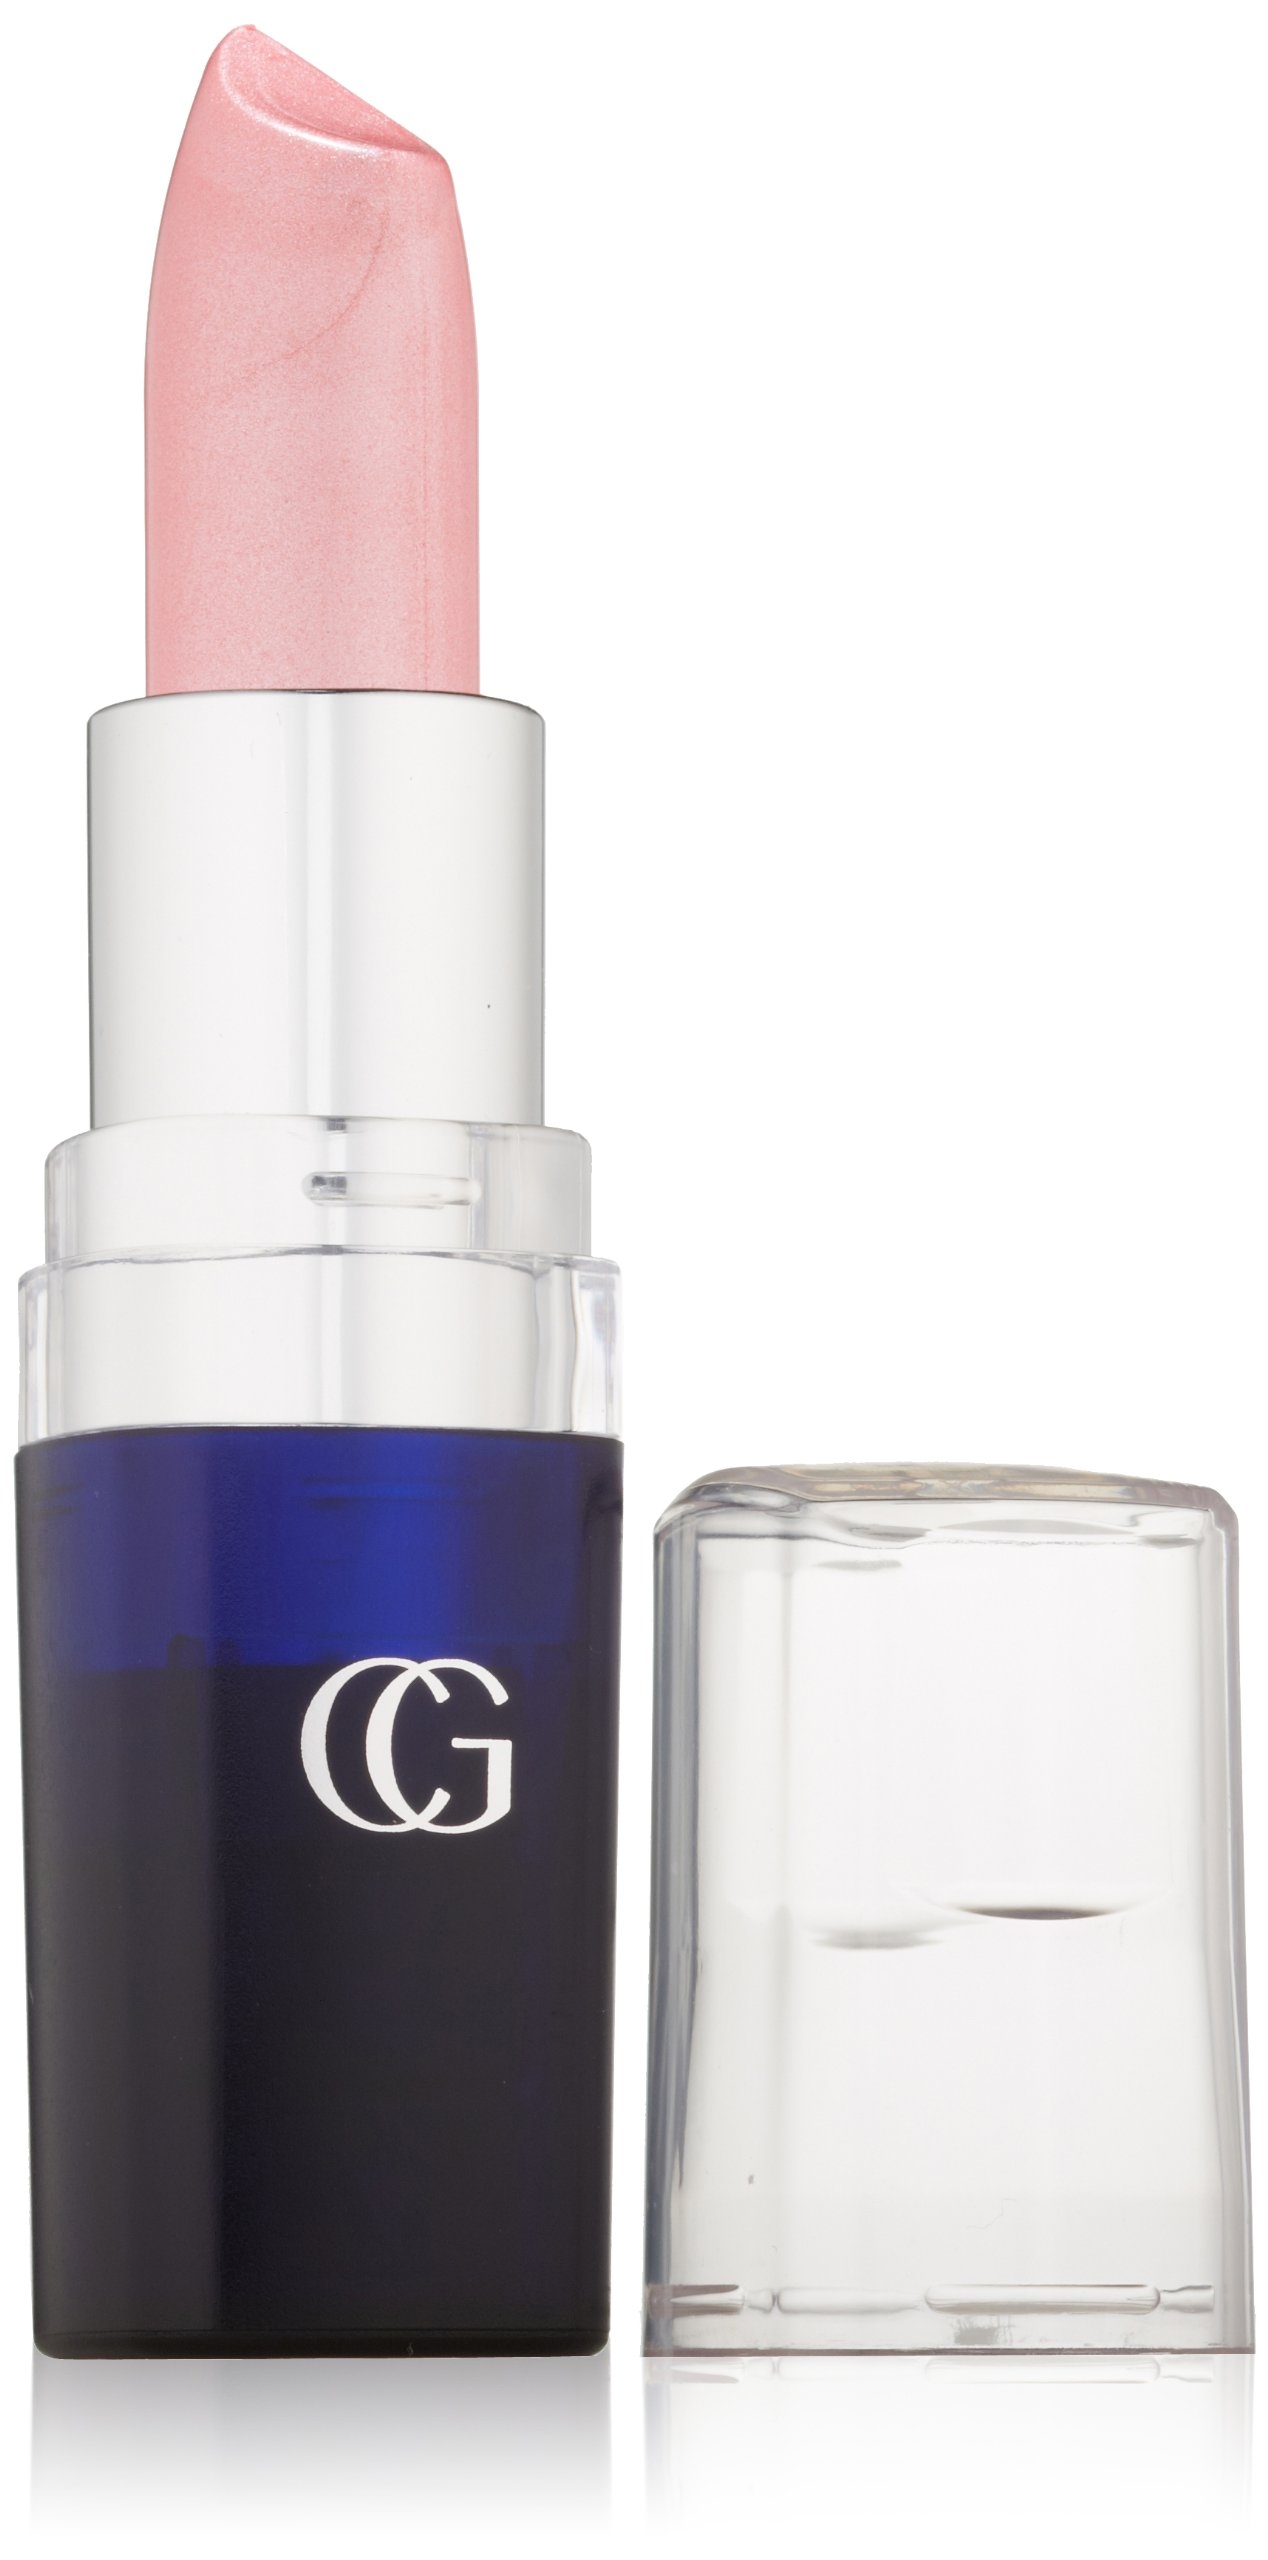 CoverGirl Continuous Color Lipstick, Rose Quartz 415, 0.13-Ounce Bottles (Pack of 2)